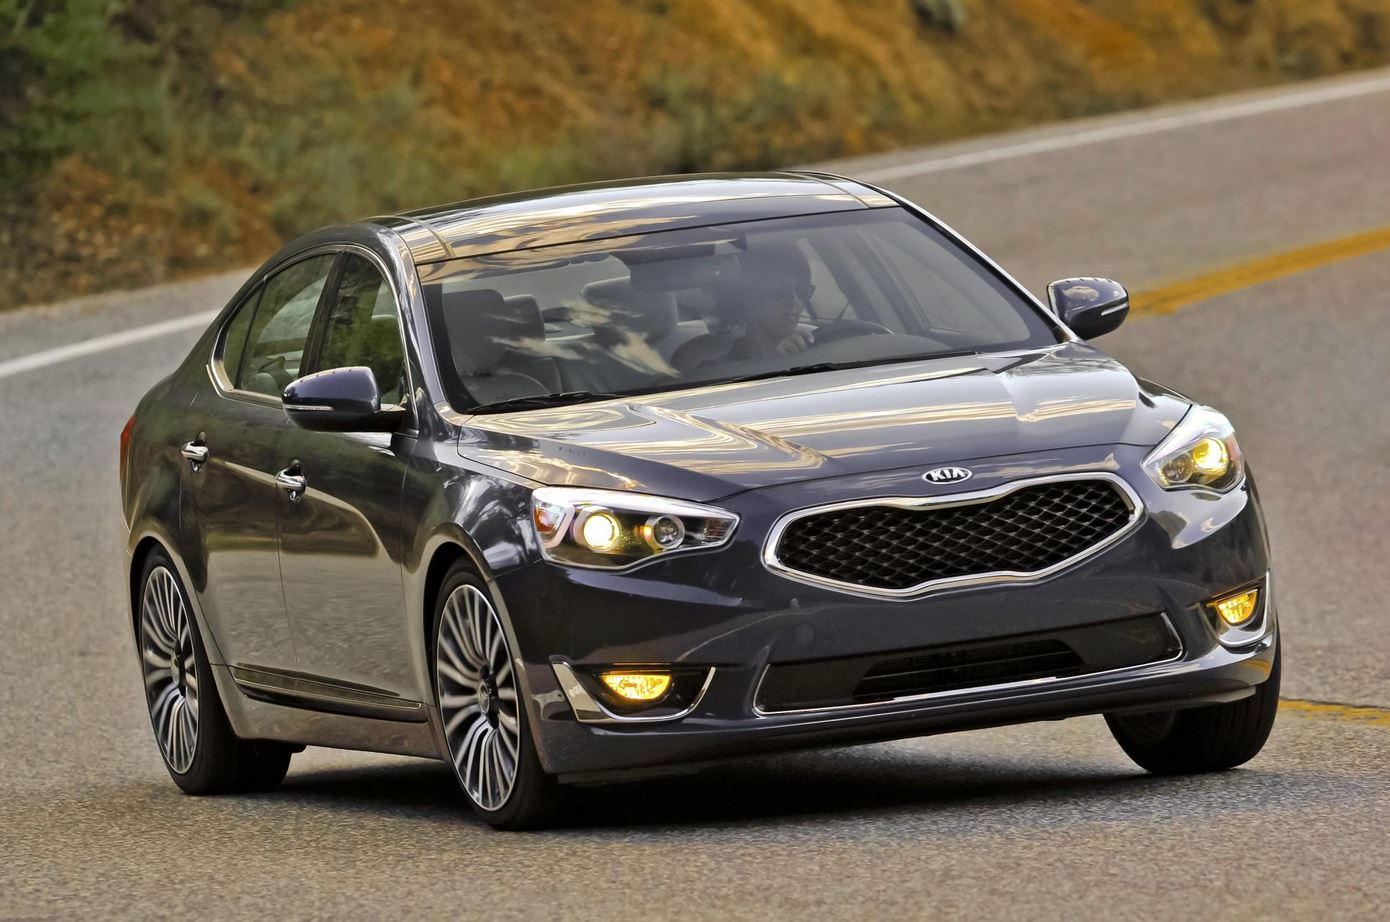 2015 kia cadenza to go on sale later this year motor exclusive. Black Bedroom Furniture Sets. Home Design Ideas